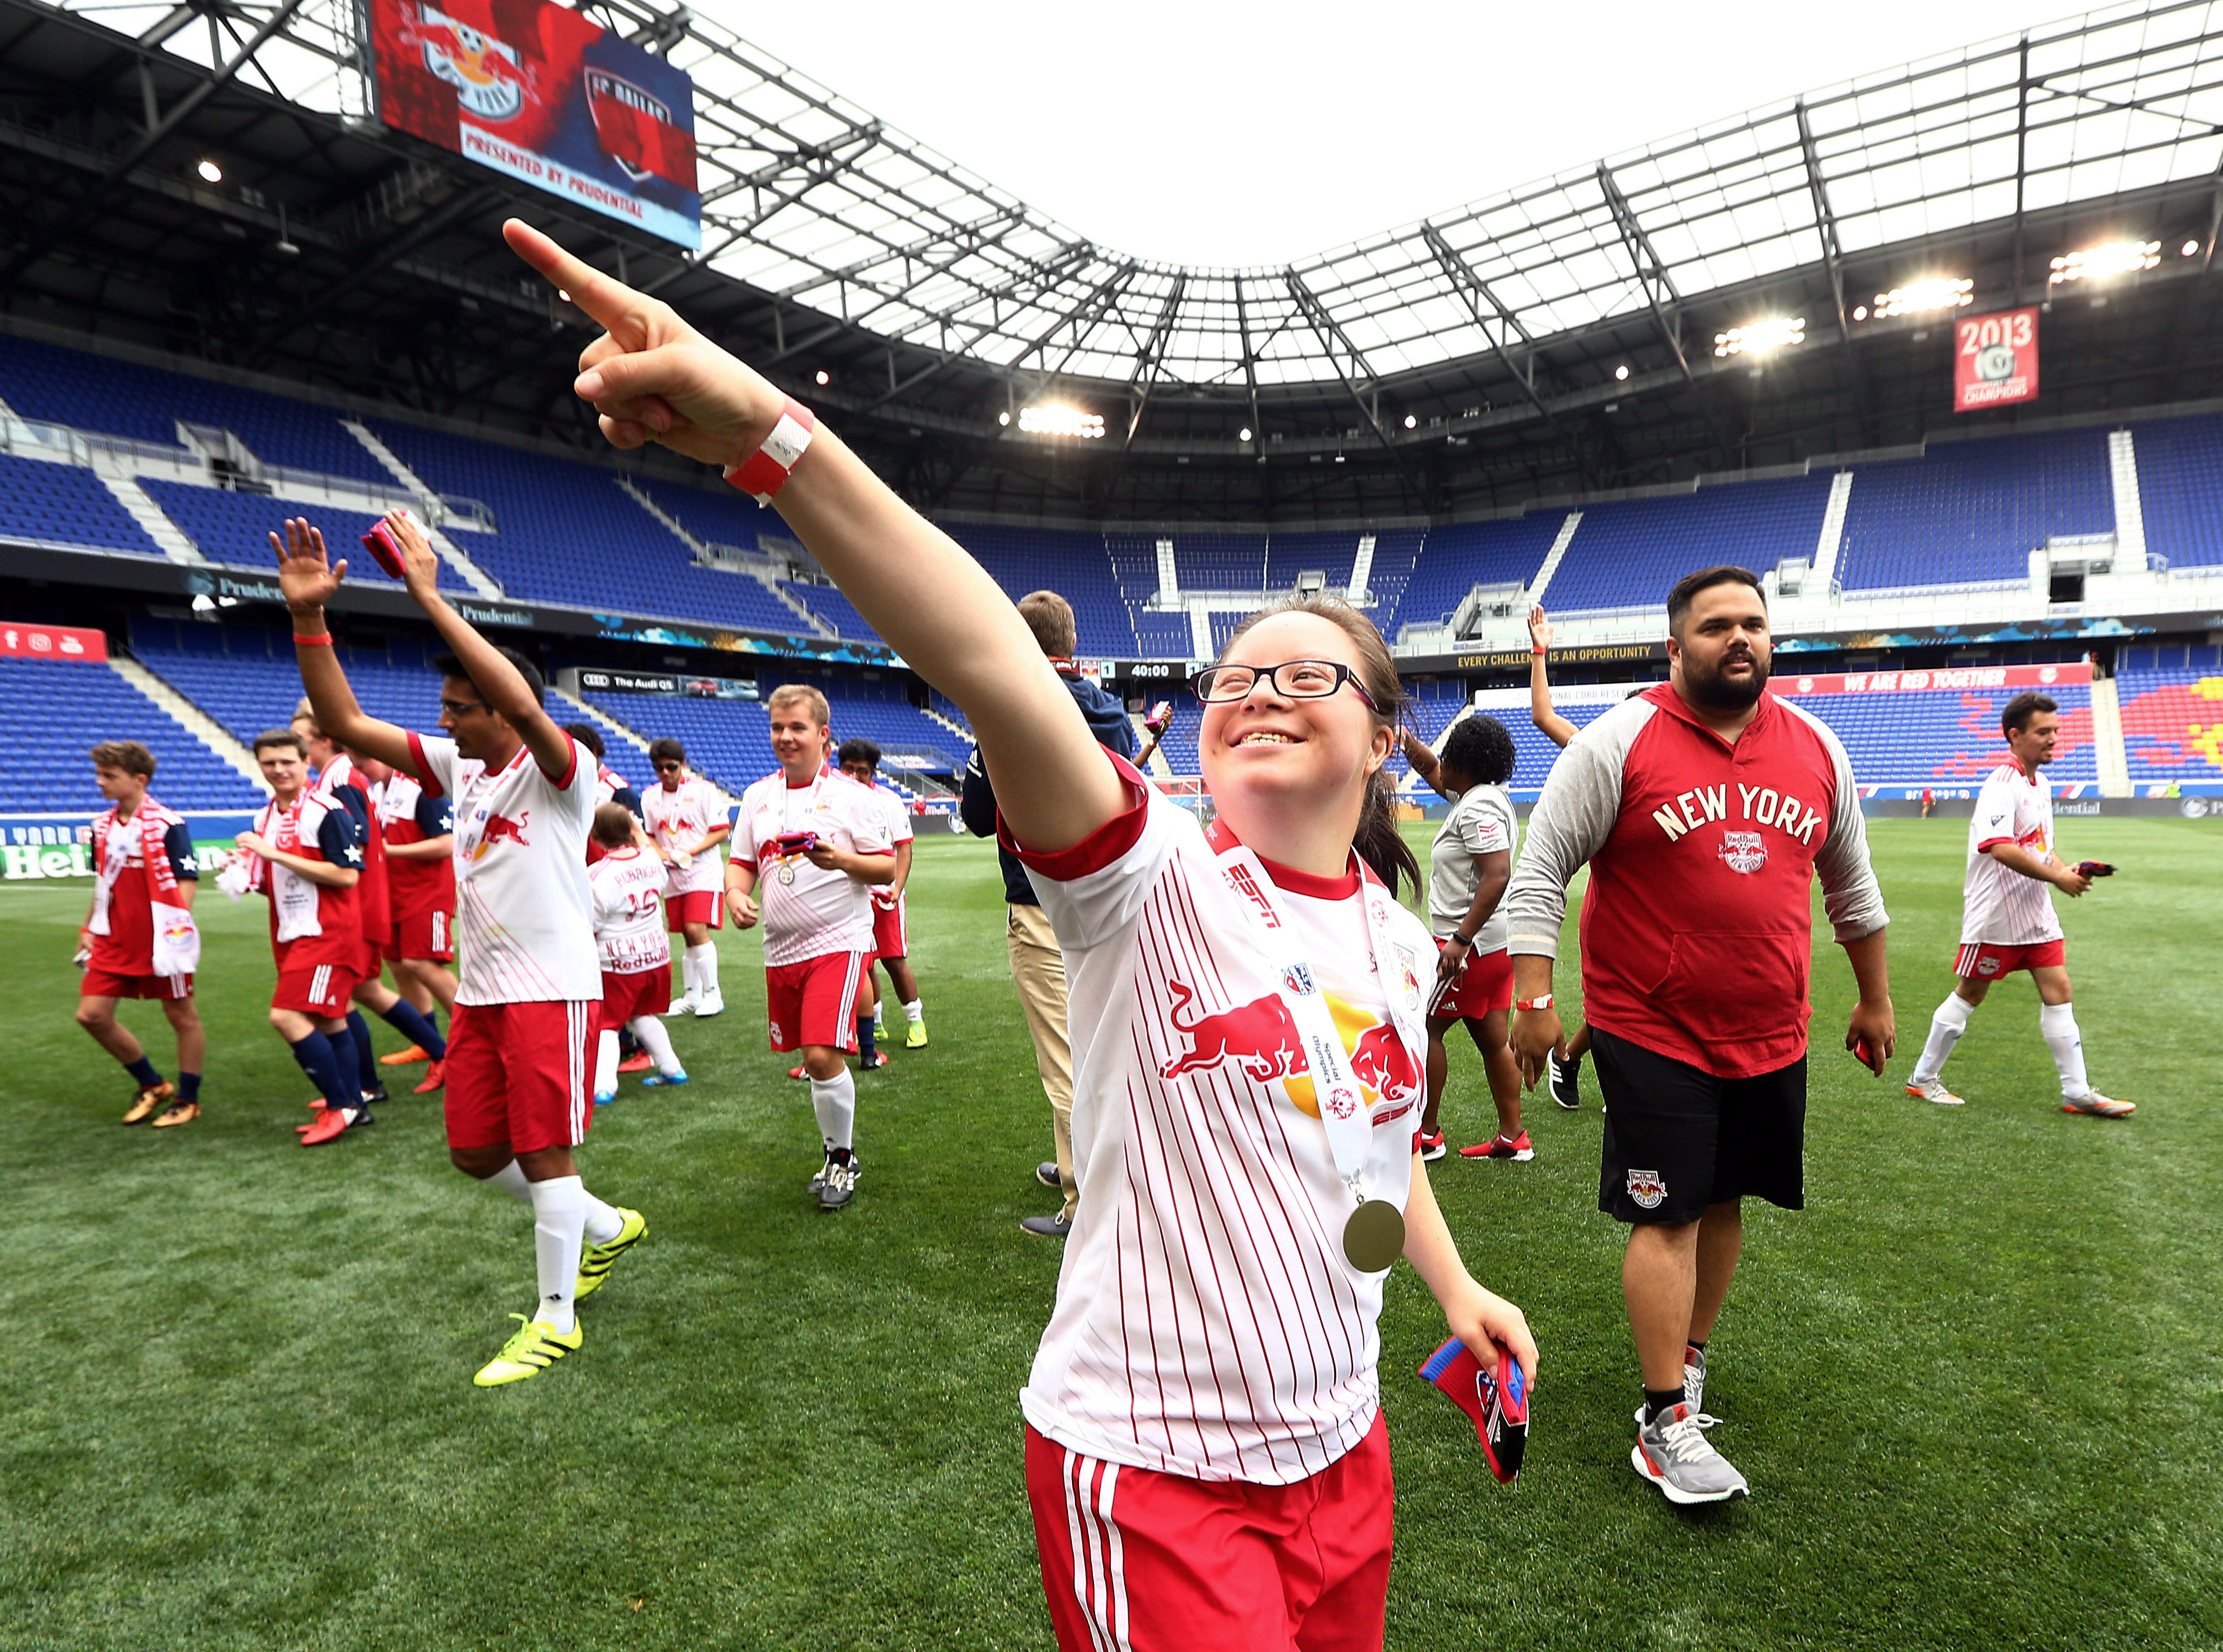 Special Olympics athlete Mai Vy Nguyen of Old Bridge playing for the Red Bulls Unified soccer team points to her family in the stands after their game vs. FC Dallas at the Red Bull Arena. June 23, 2018. Harrison, NJ